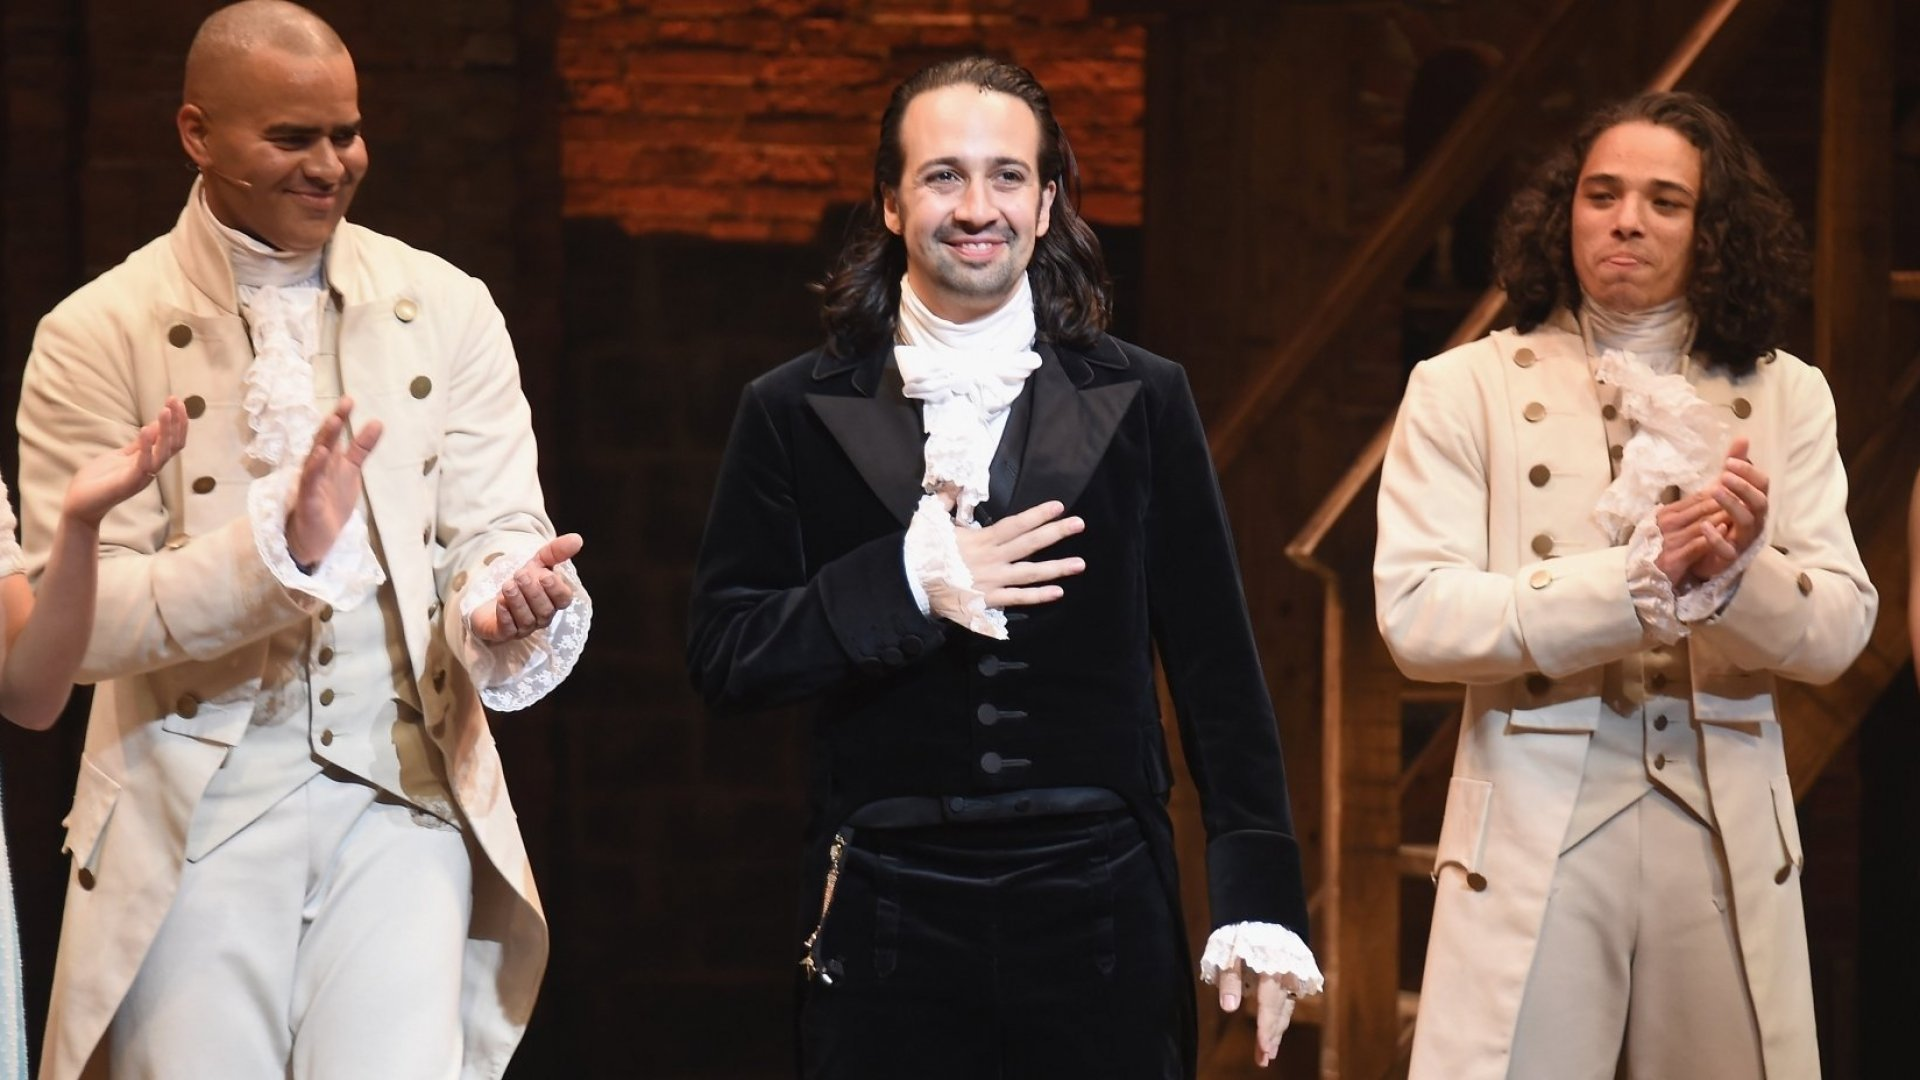 Lin-Manuel Miranda Just Kicked Off His 'Hamilton' Tour of Puerto Rico and It's the Height of Emotional Intelligence